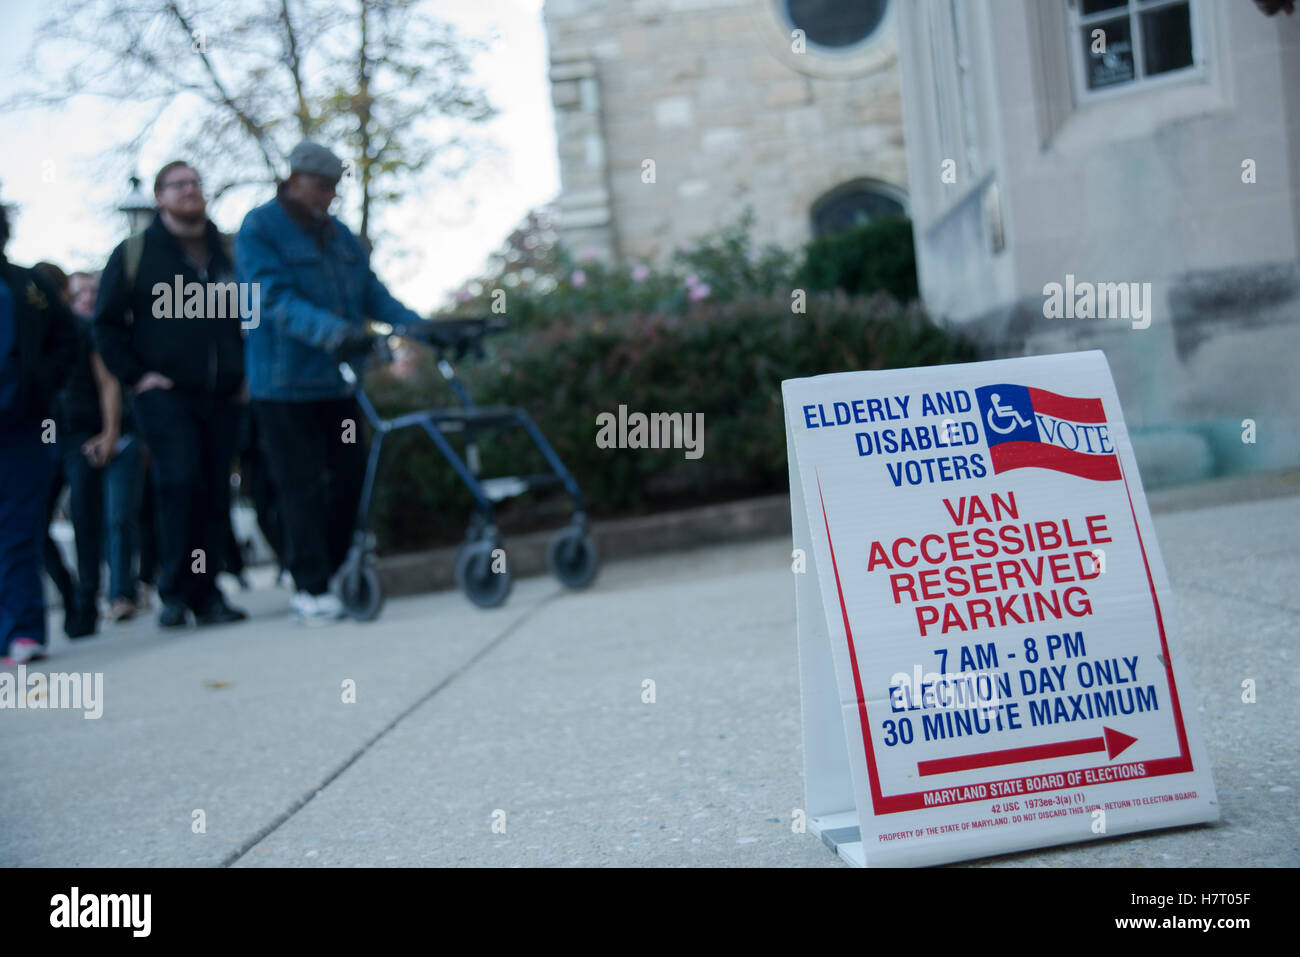 Baltimore, USA. 8th Nov, 2016. Voters line up early to cast their ballots on Nov 8 th Election Day at Presbyterian - Stock Image